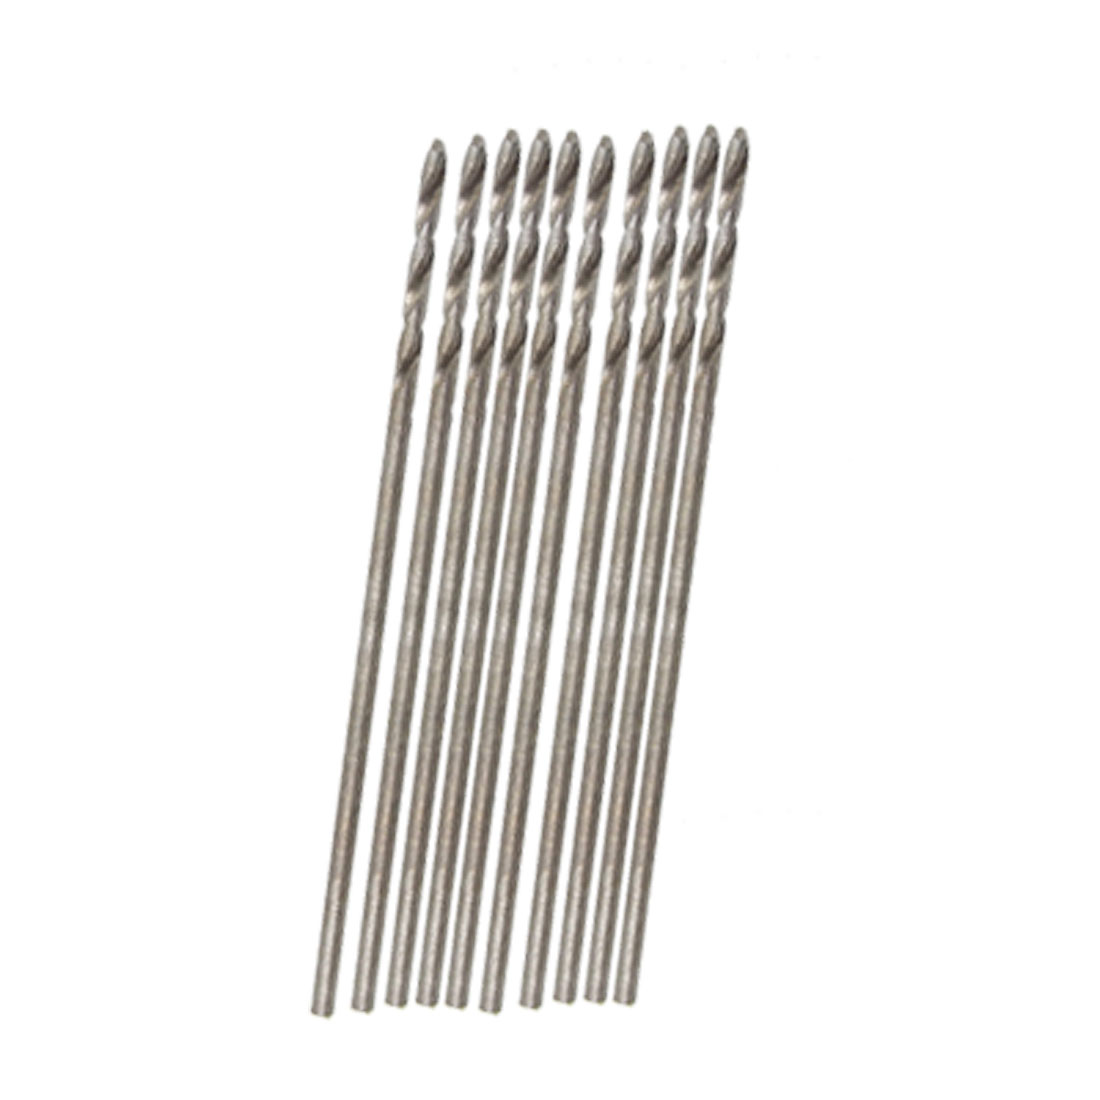 20 Pcs 30mm Long 0.8mm Dia Micro HSS Twist Drill Bit